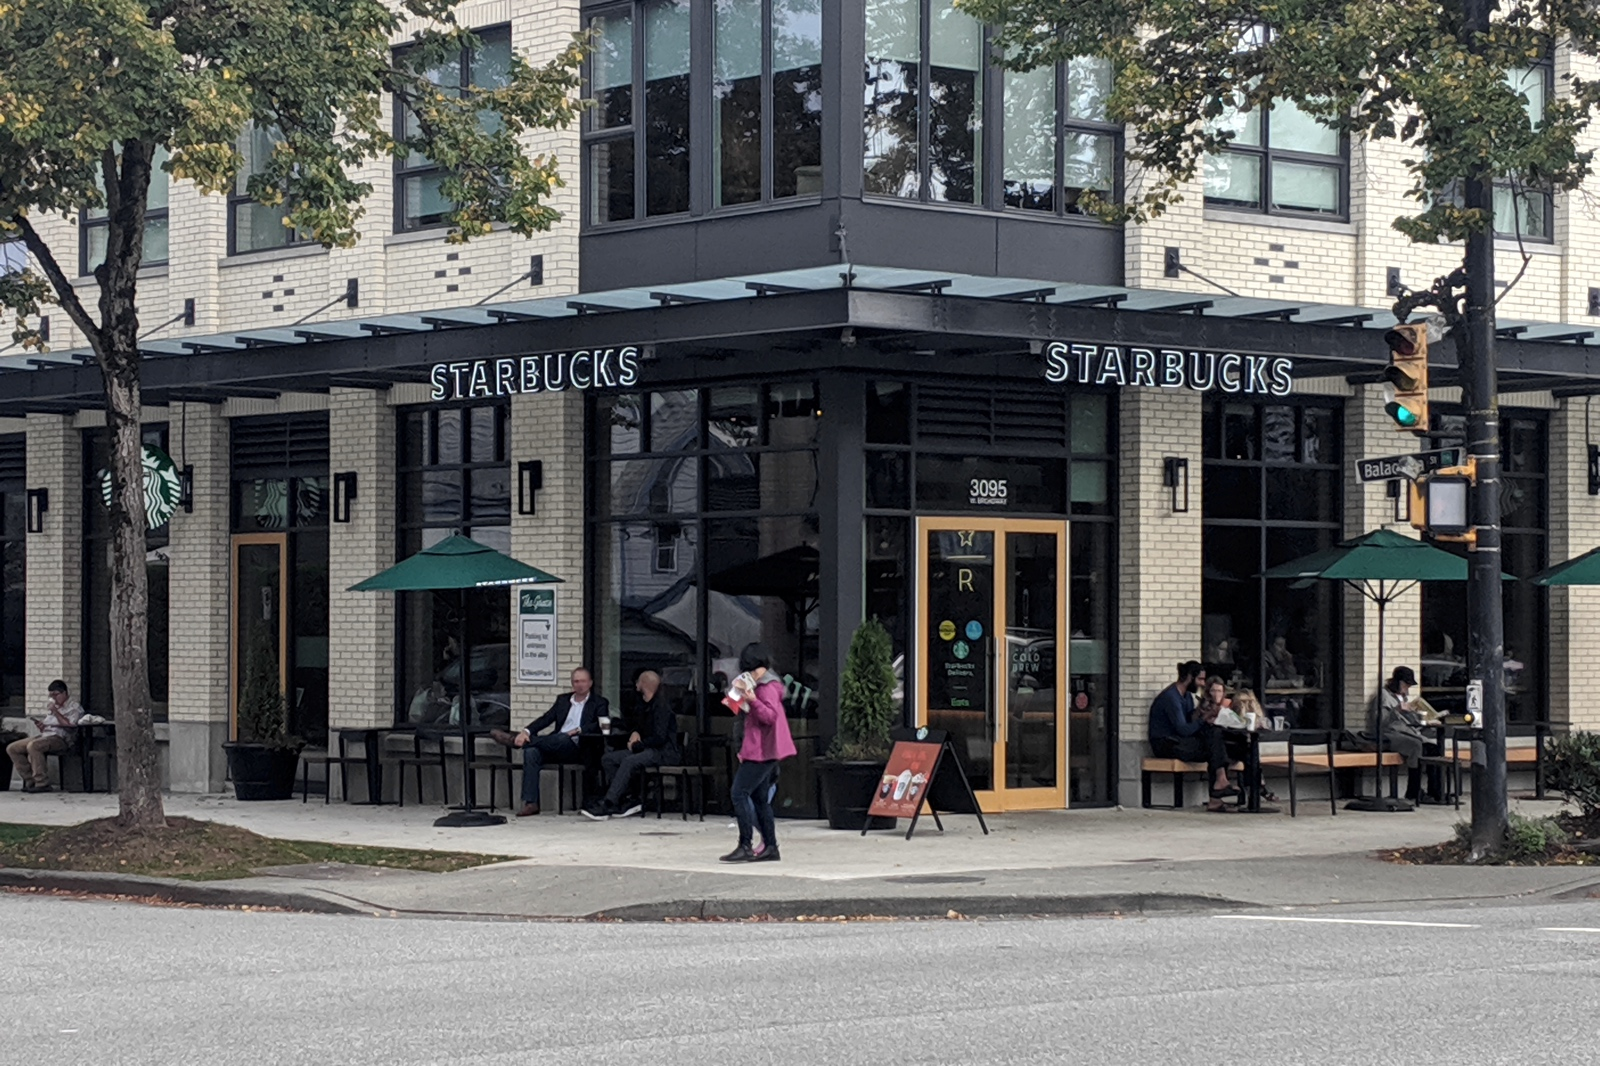 Completed Commercial Tenant Improvement project by Outline Millwork for Starbucks West Broadway Vancouver, BC featuring custom commercial millwork, custom cabinetry & woodworking, and commercial fixtures.